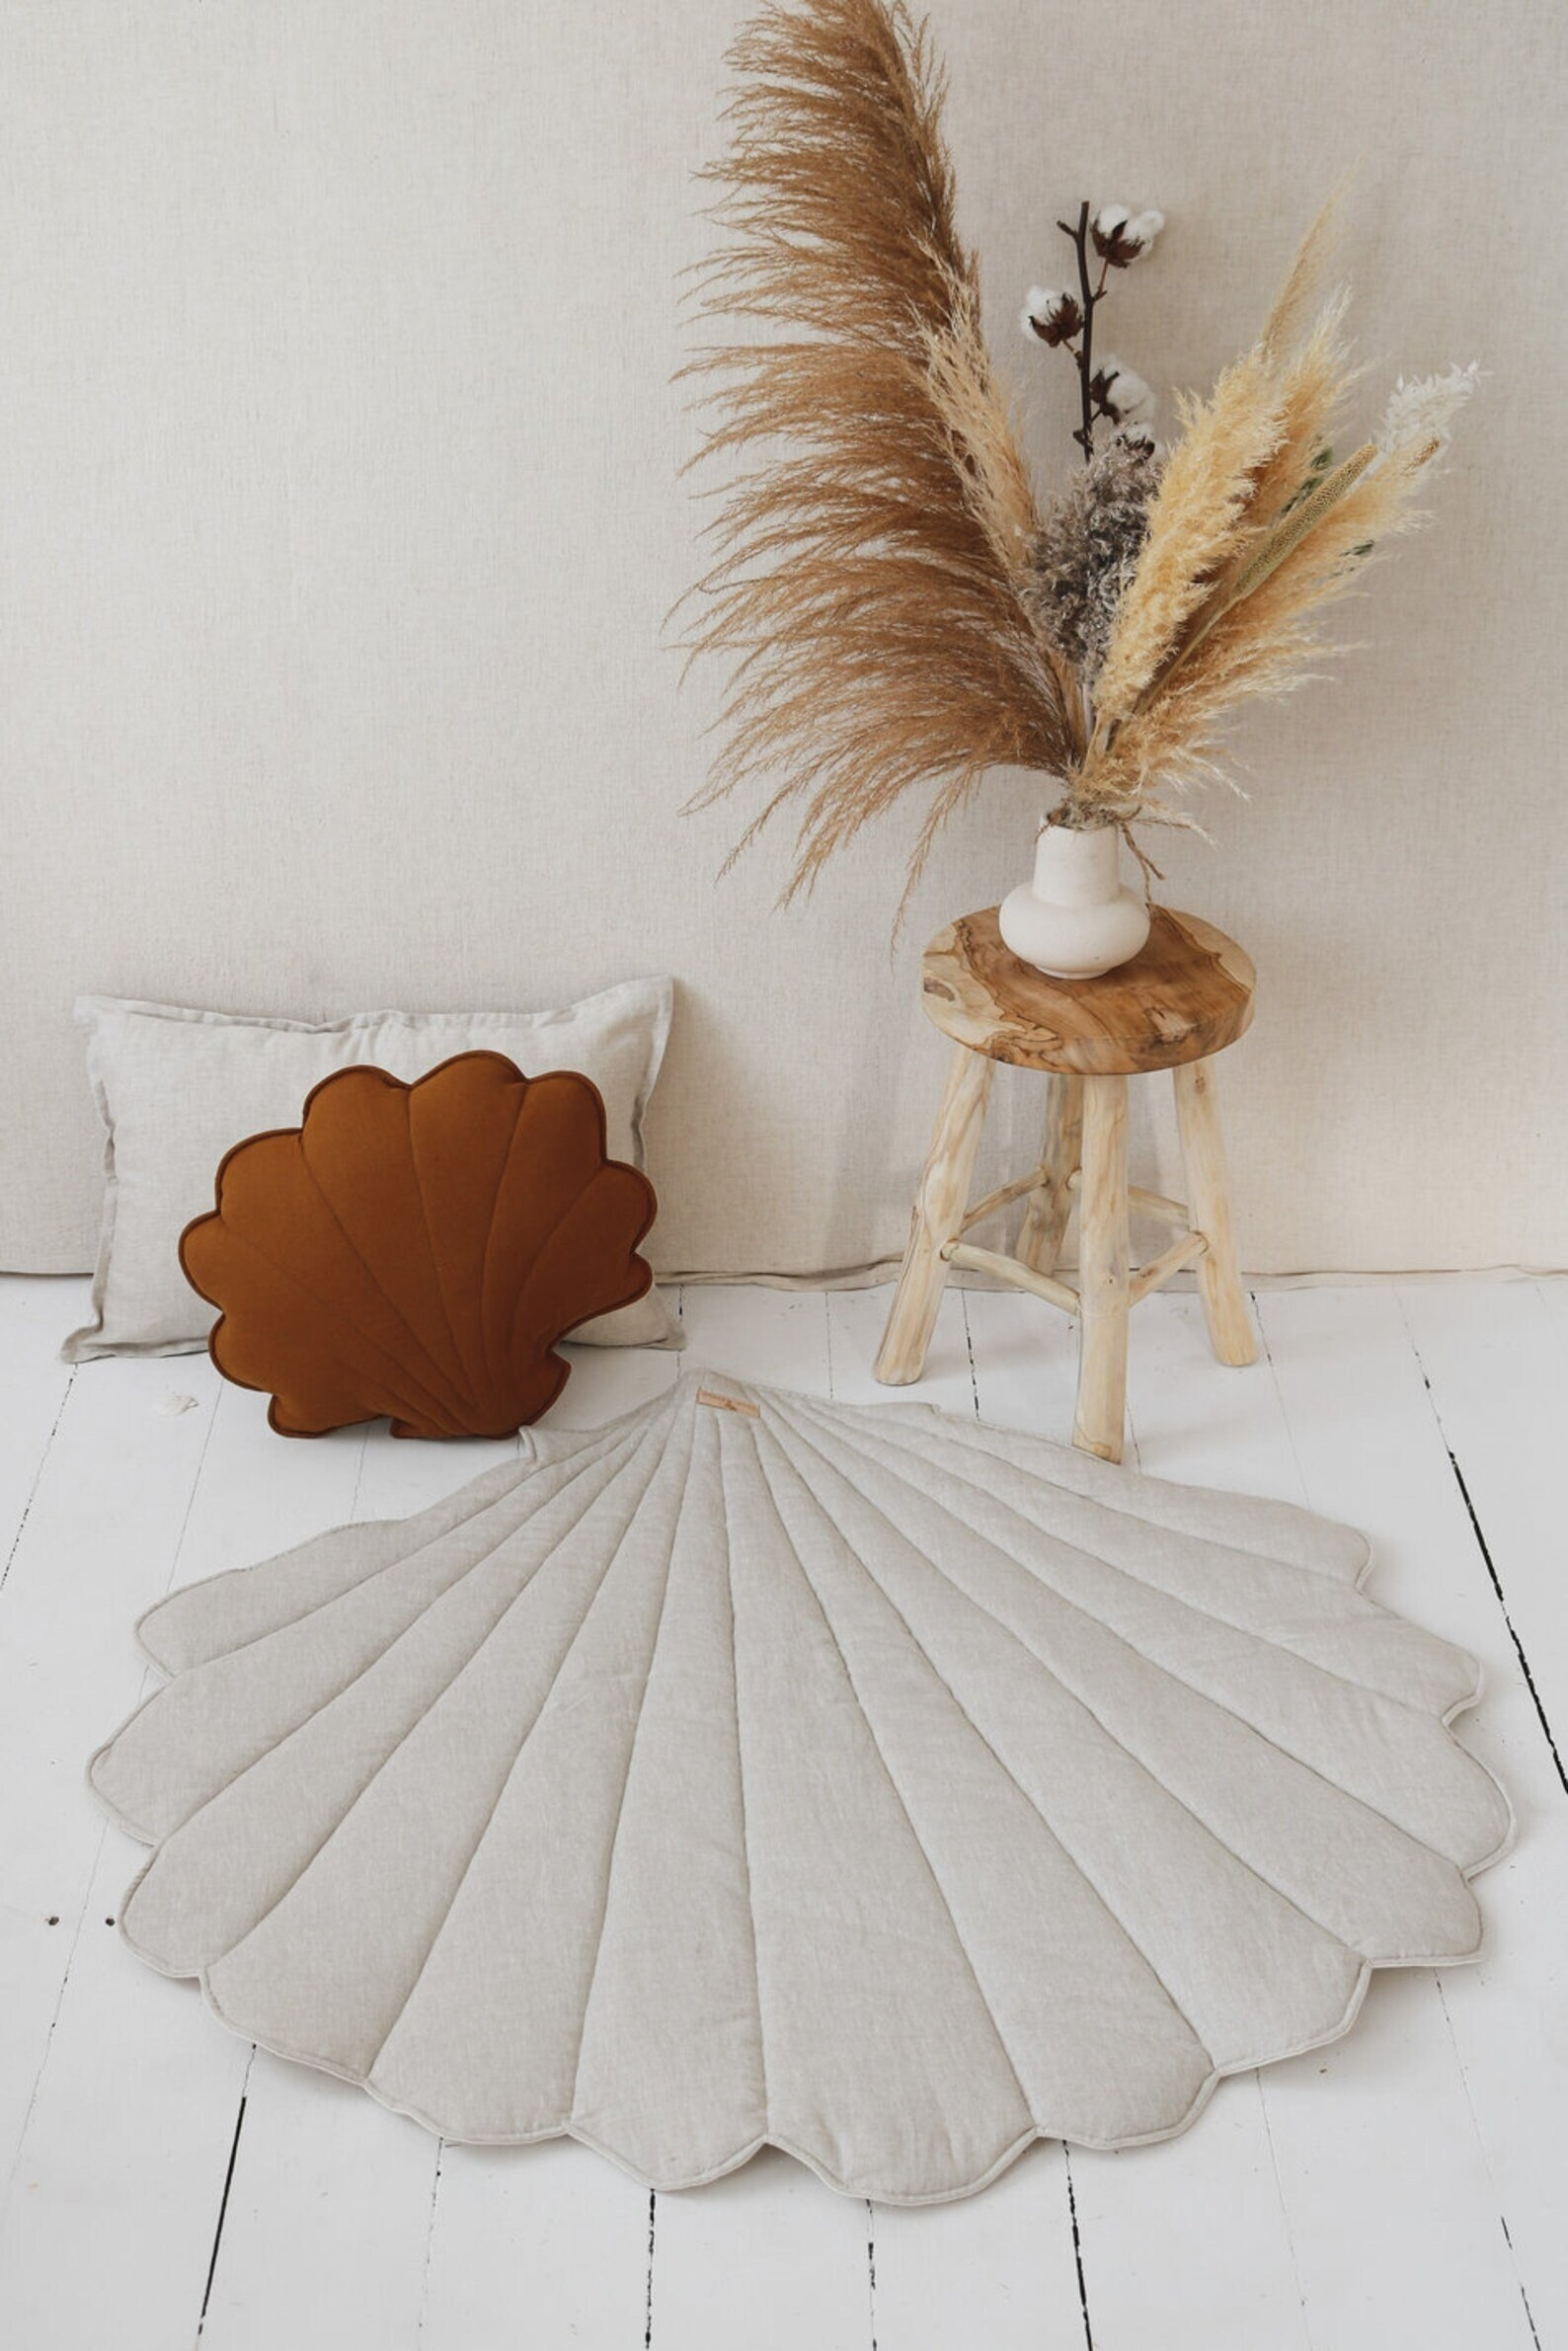 sea shell shaped mat on wooden floor. it's beside matching pillows and dried flowers.